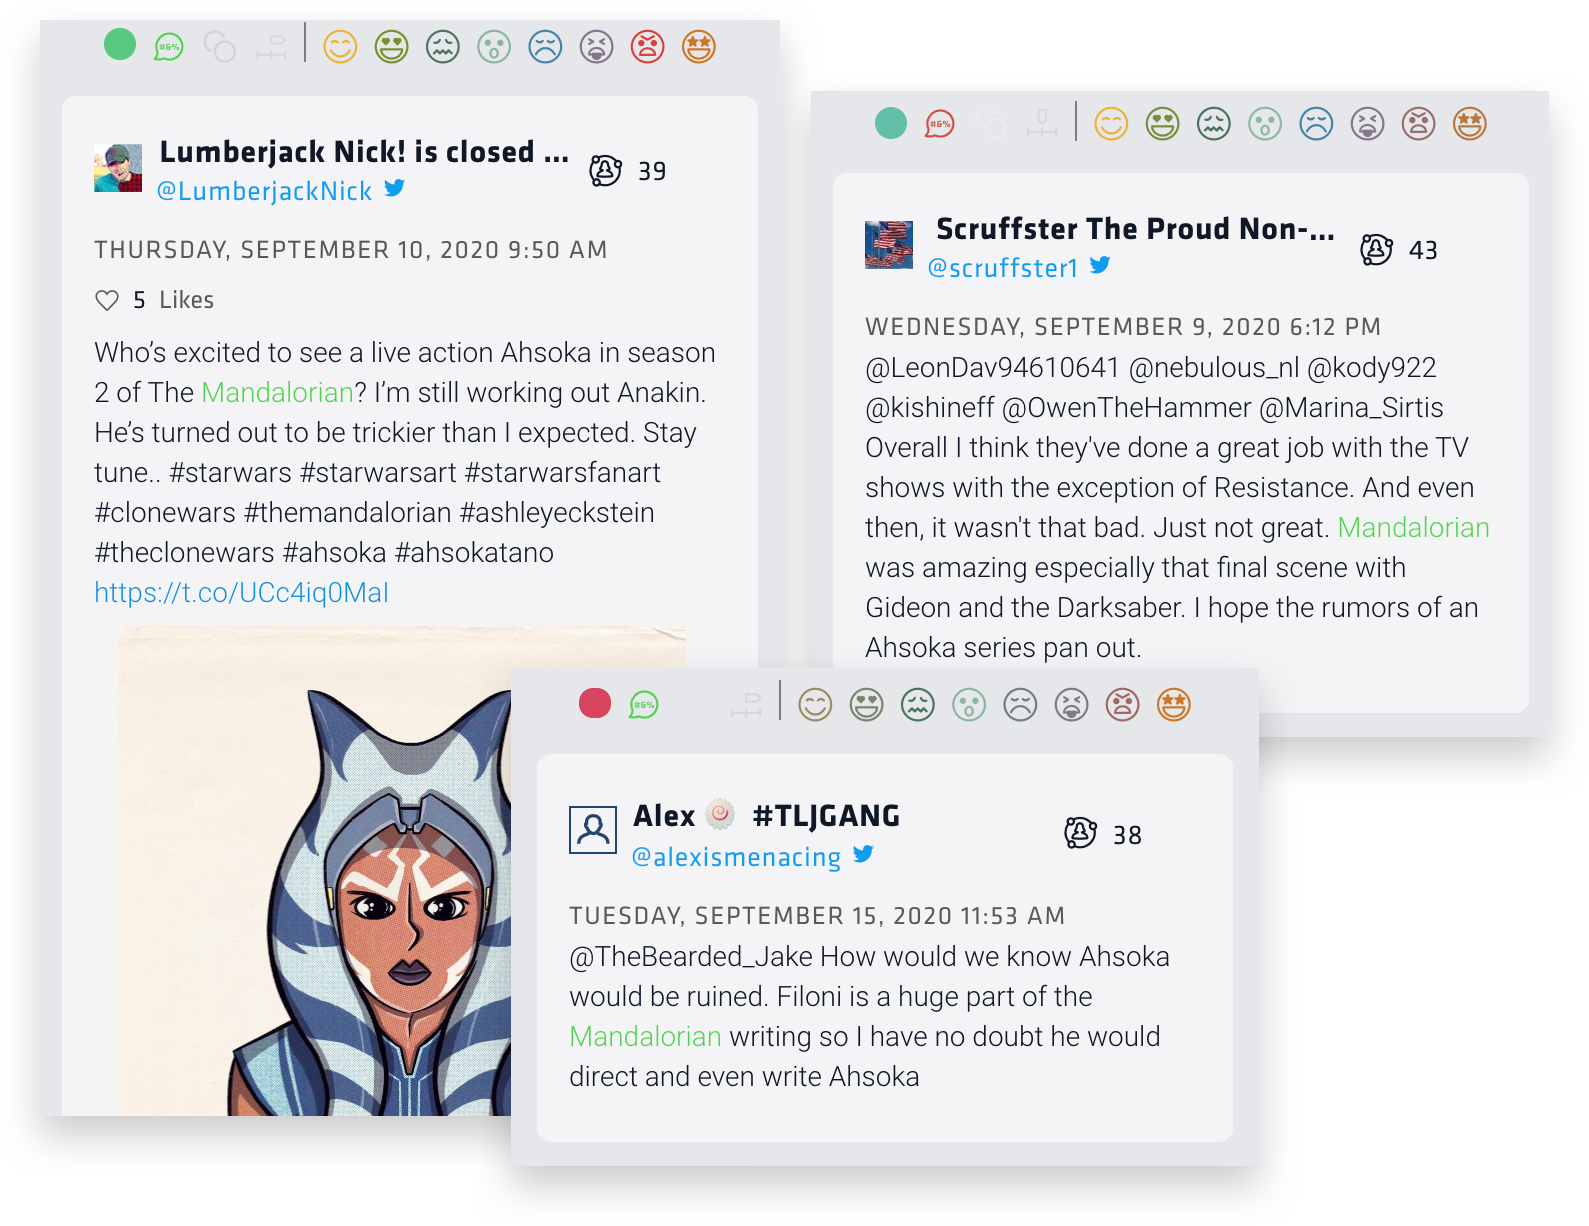 Here's three tweets talking about Ahsoka. The first is an artist sharing their fan art of the character. The second hopes they make an Ahsoka tv series. The last is a tweet in reply to another that says Ahsoka will be done well on the Mandalorian because her creator, Dave Filoni, will most likely write her character.r